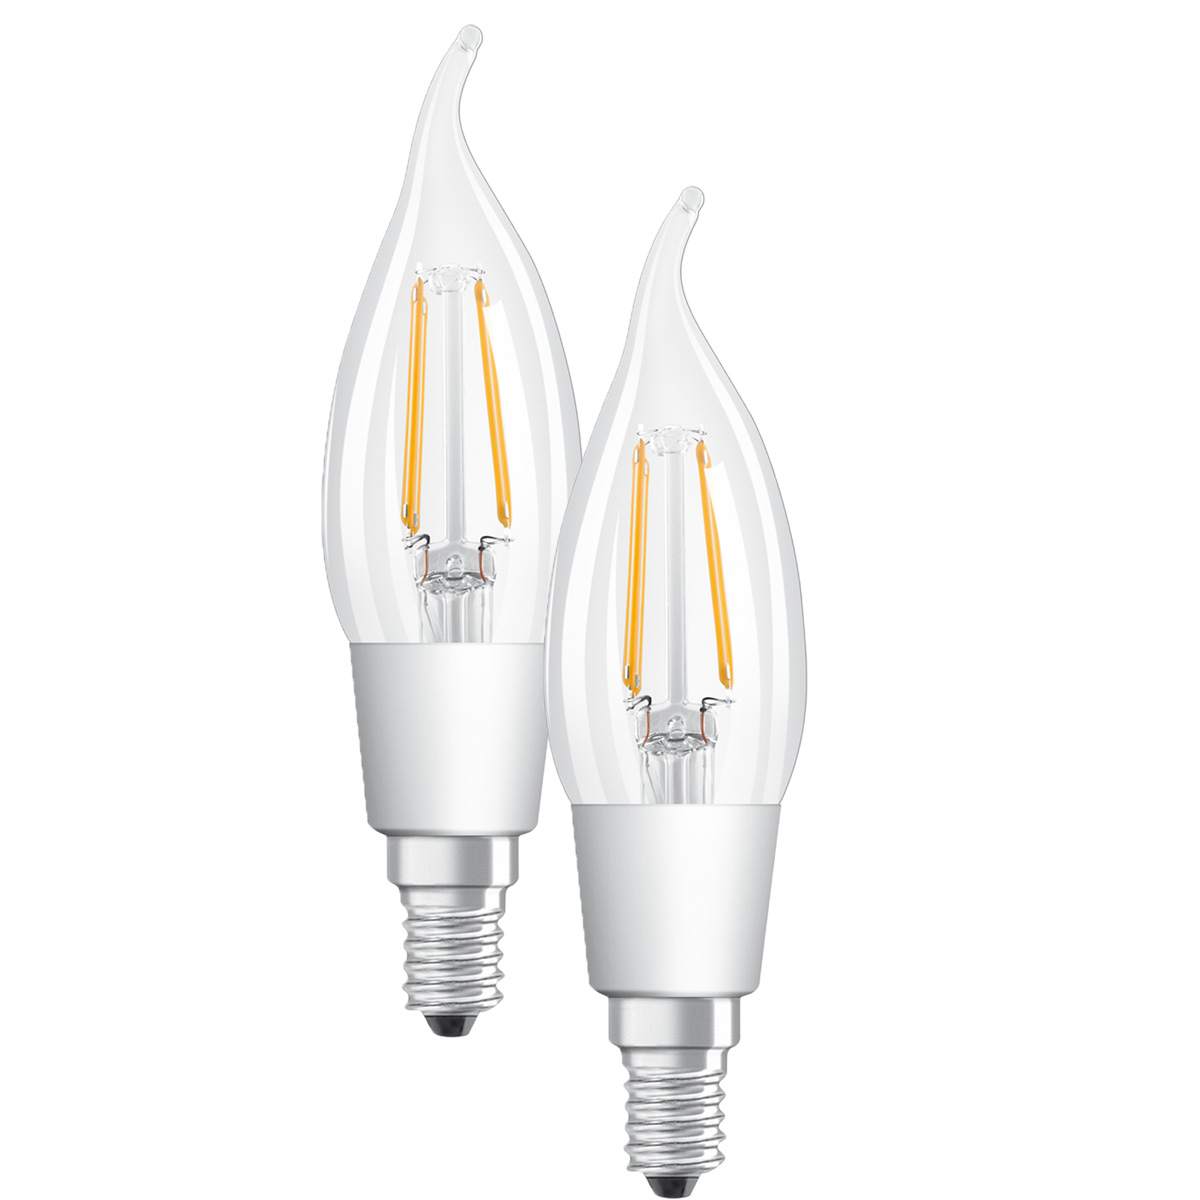 Lampen & Licht Blulaxa Led Corn-light 300° E40 54w = 200w 6200lm Neutral Weiß 4000k A Ip64 3er